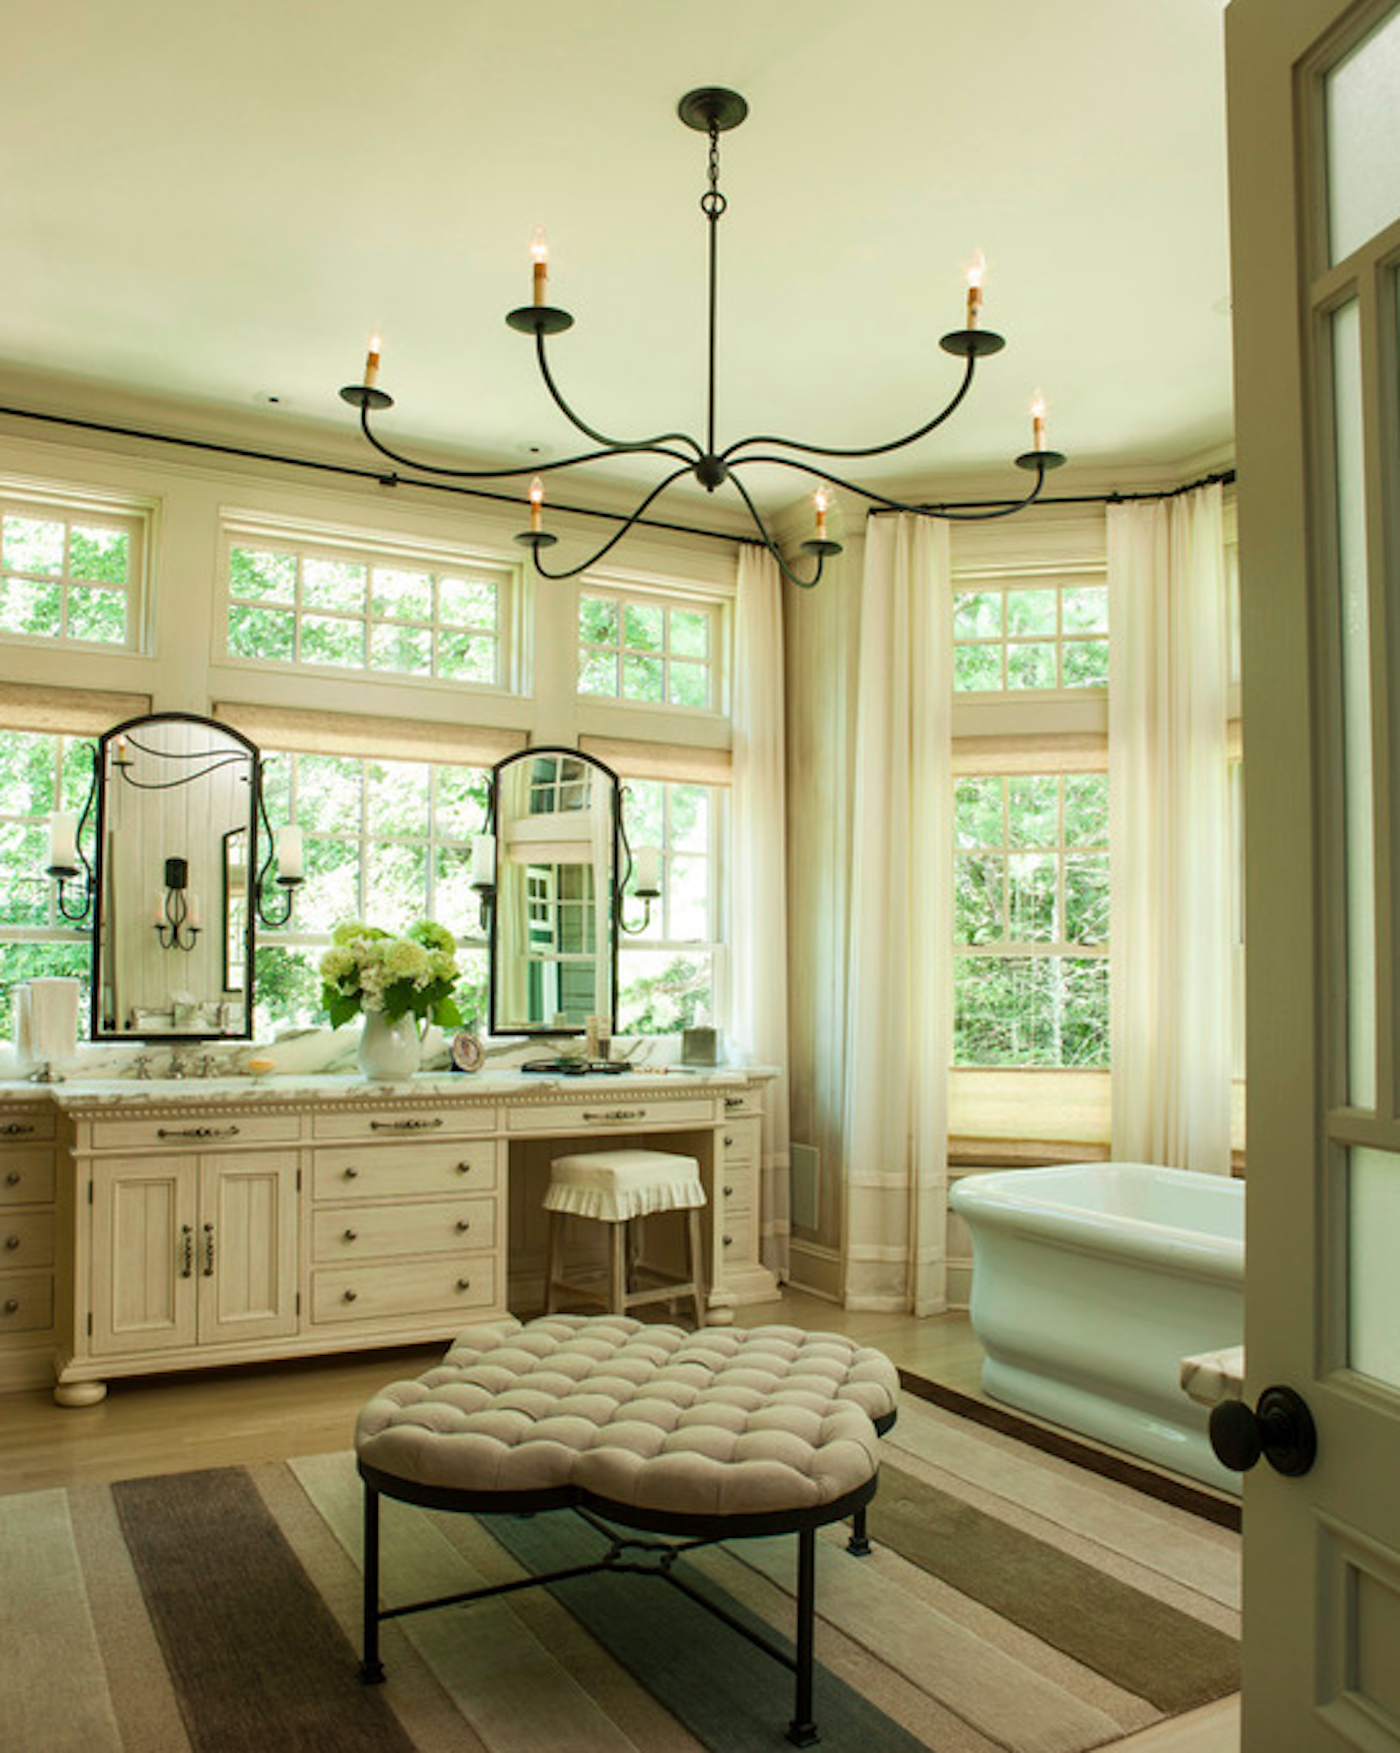 Bay windows brighten this classic master bathroom. by Taylor & Taylor